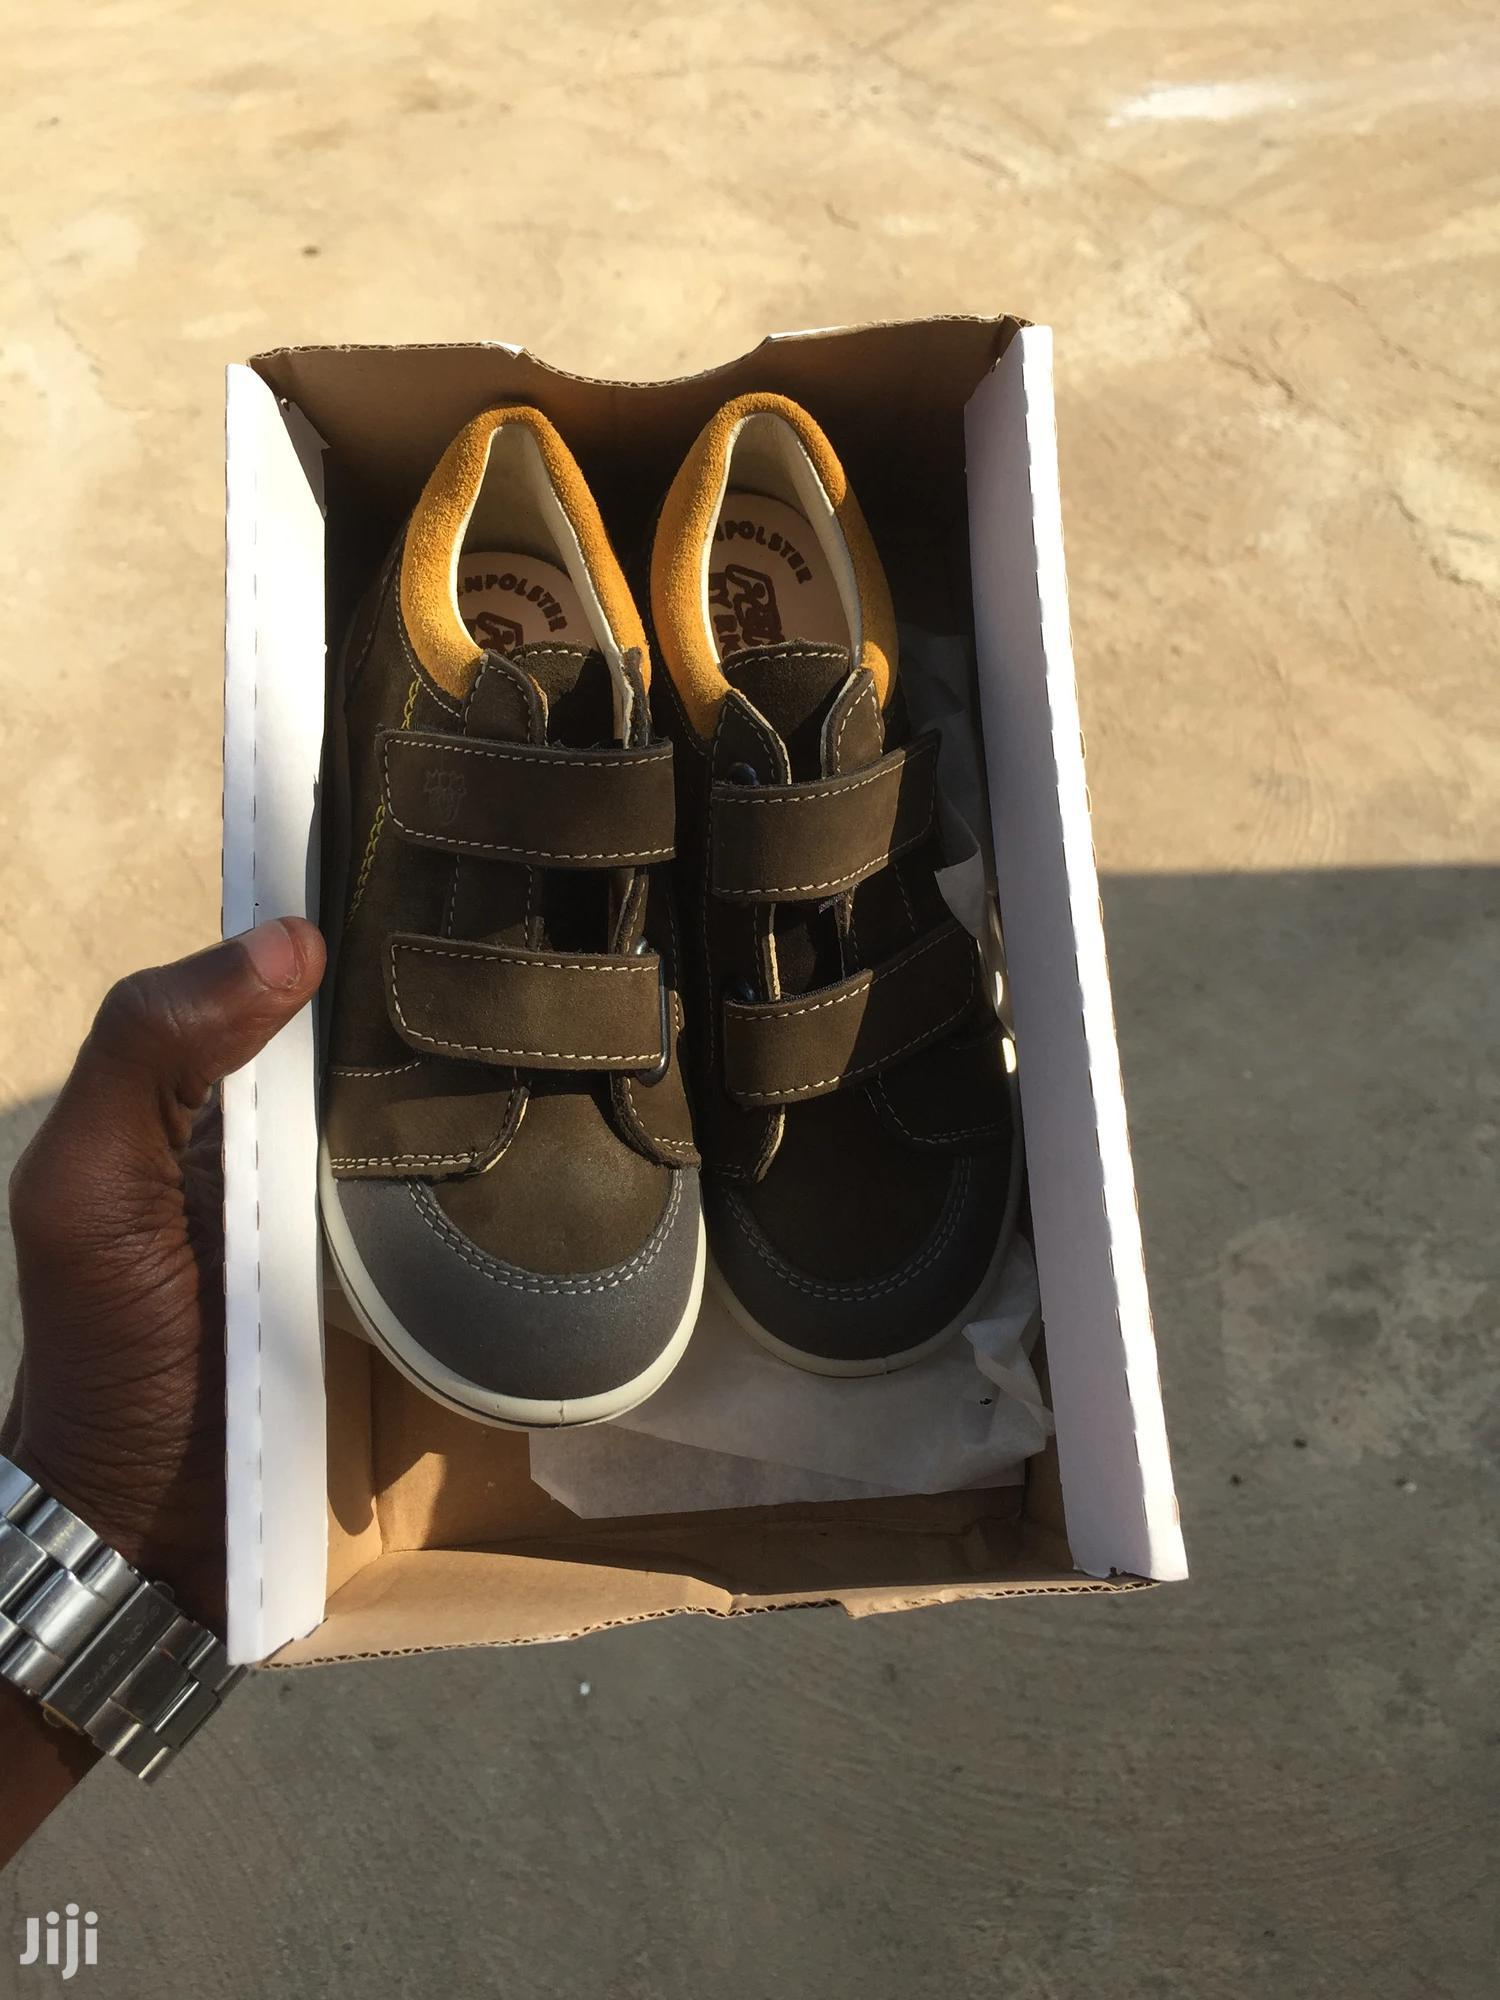 Brand New Kids Wear Size 27 From U.K for Sale | Children's Shoes for sale in North Kaneshie, Greater Accra, Ghana